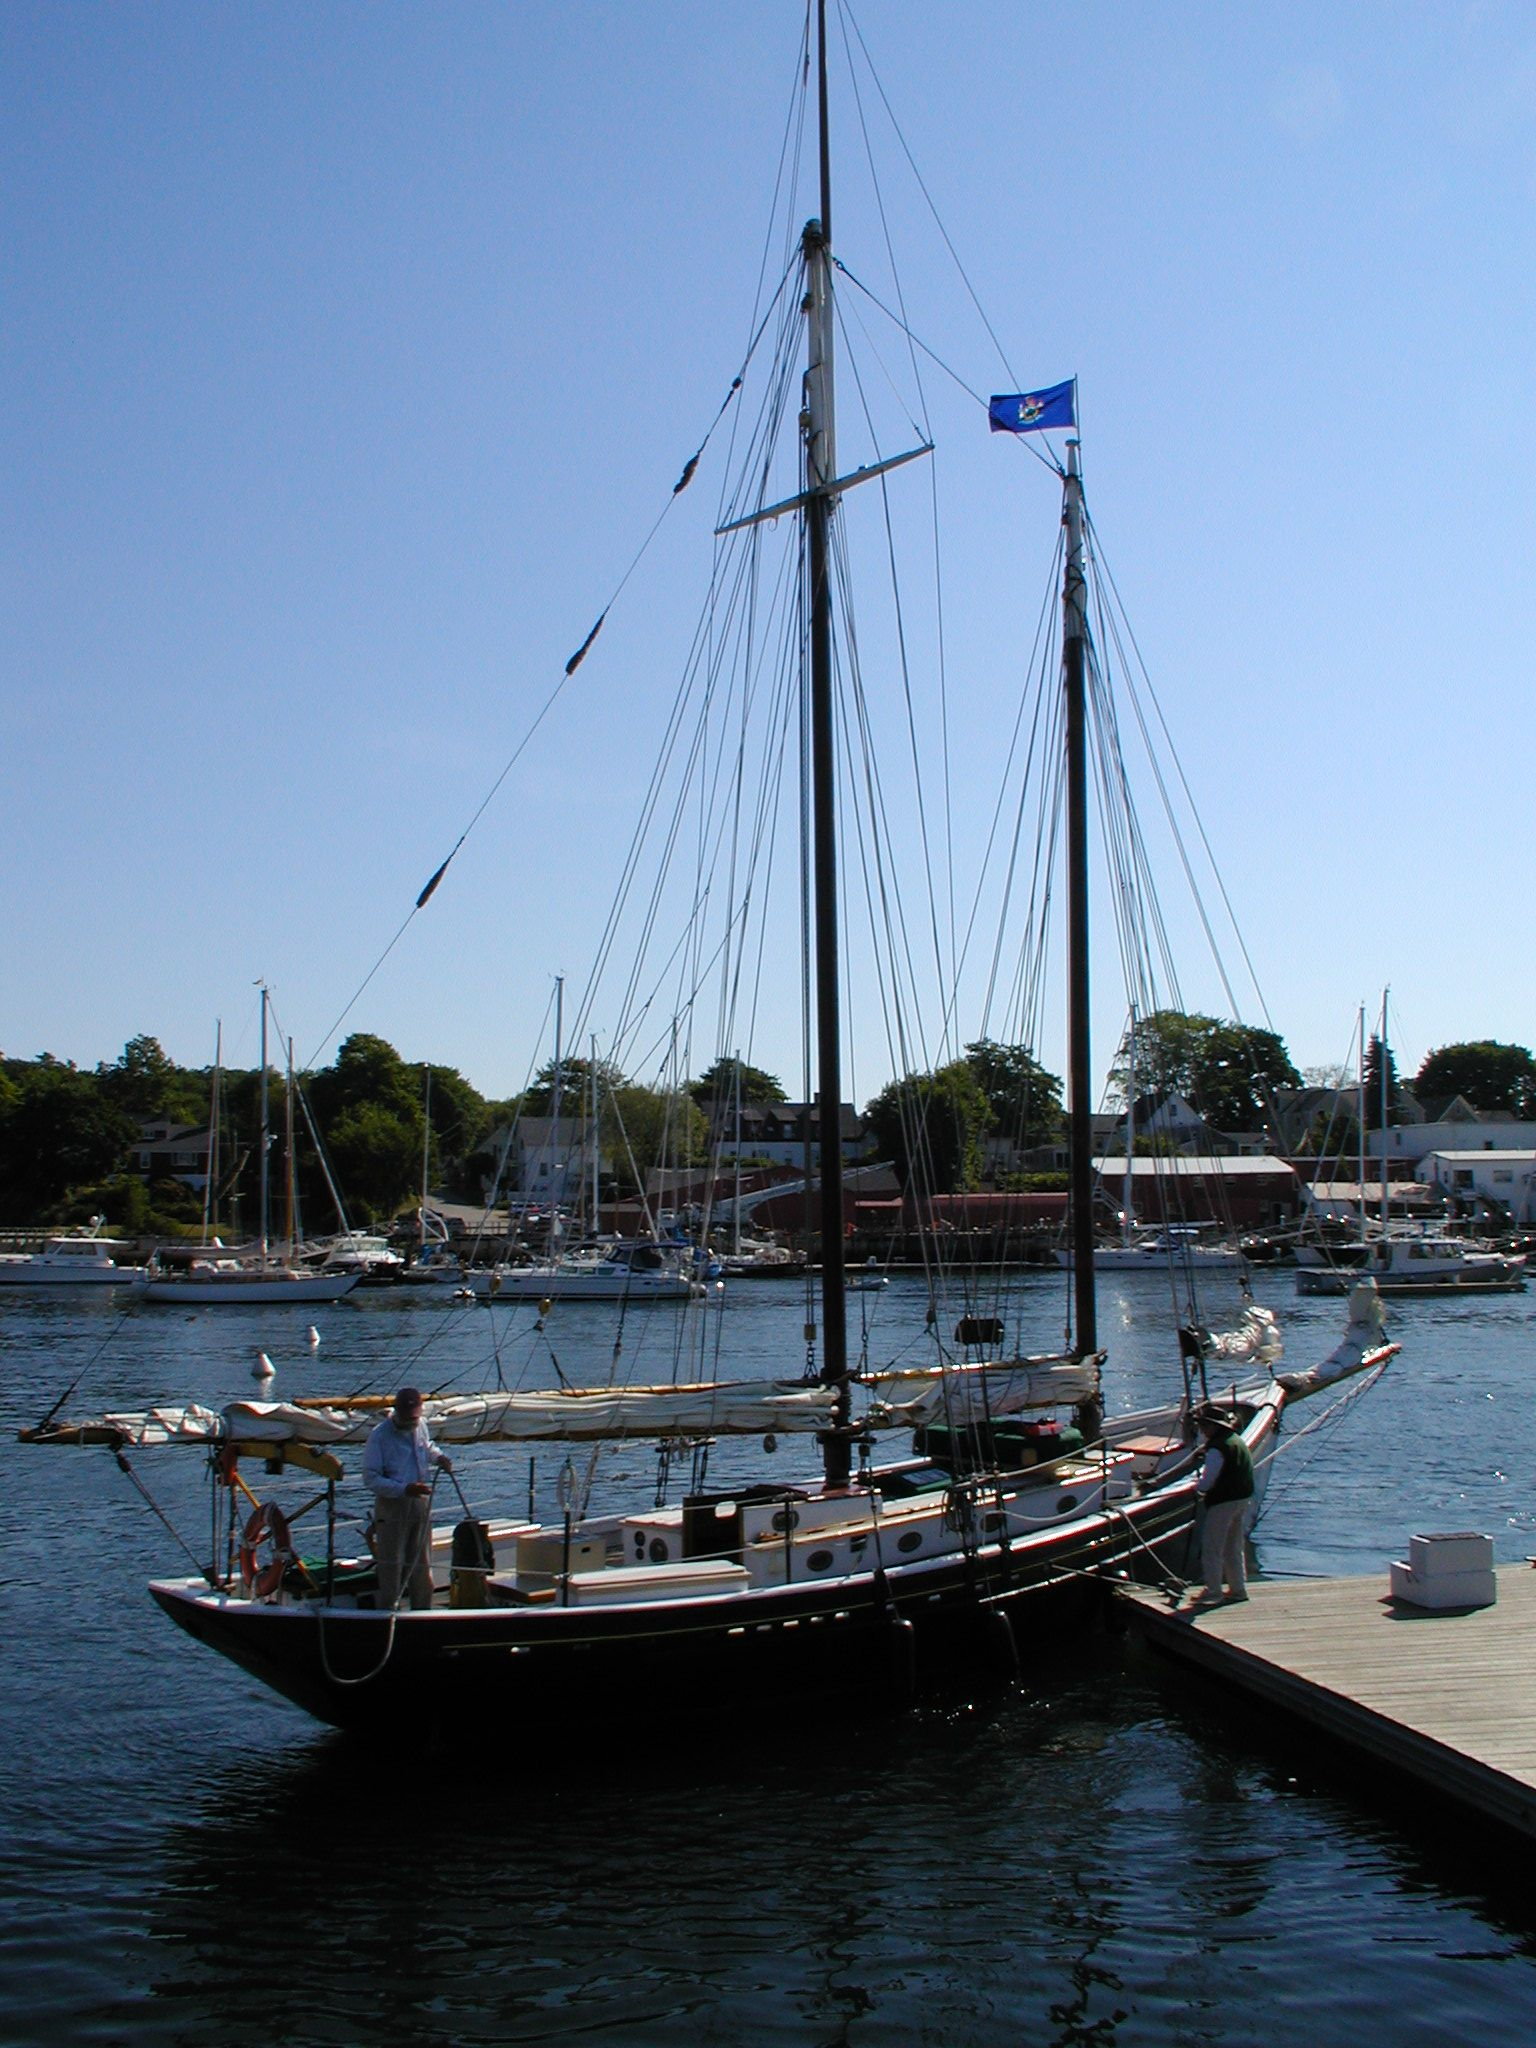 getting ready to go sailing. Camden Harbour. Maine, USA. I took this photo in September 2003